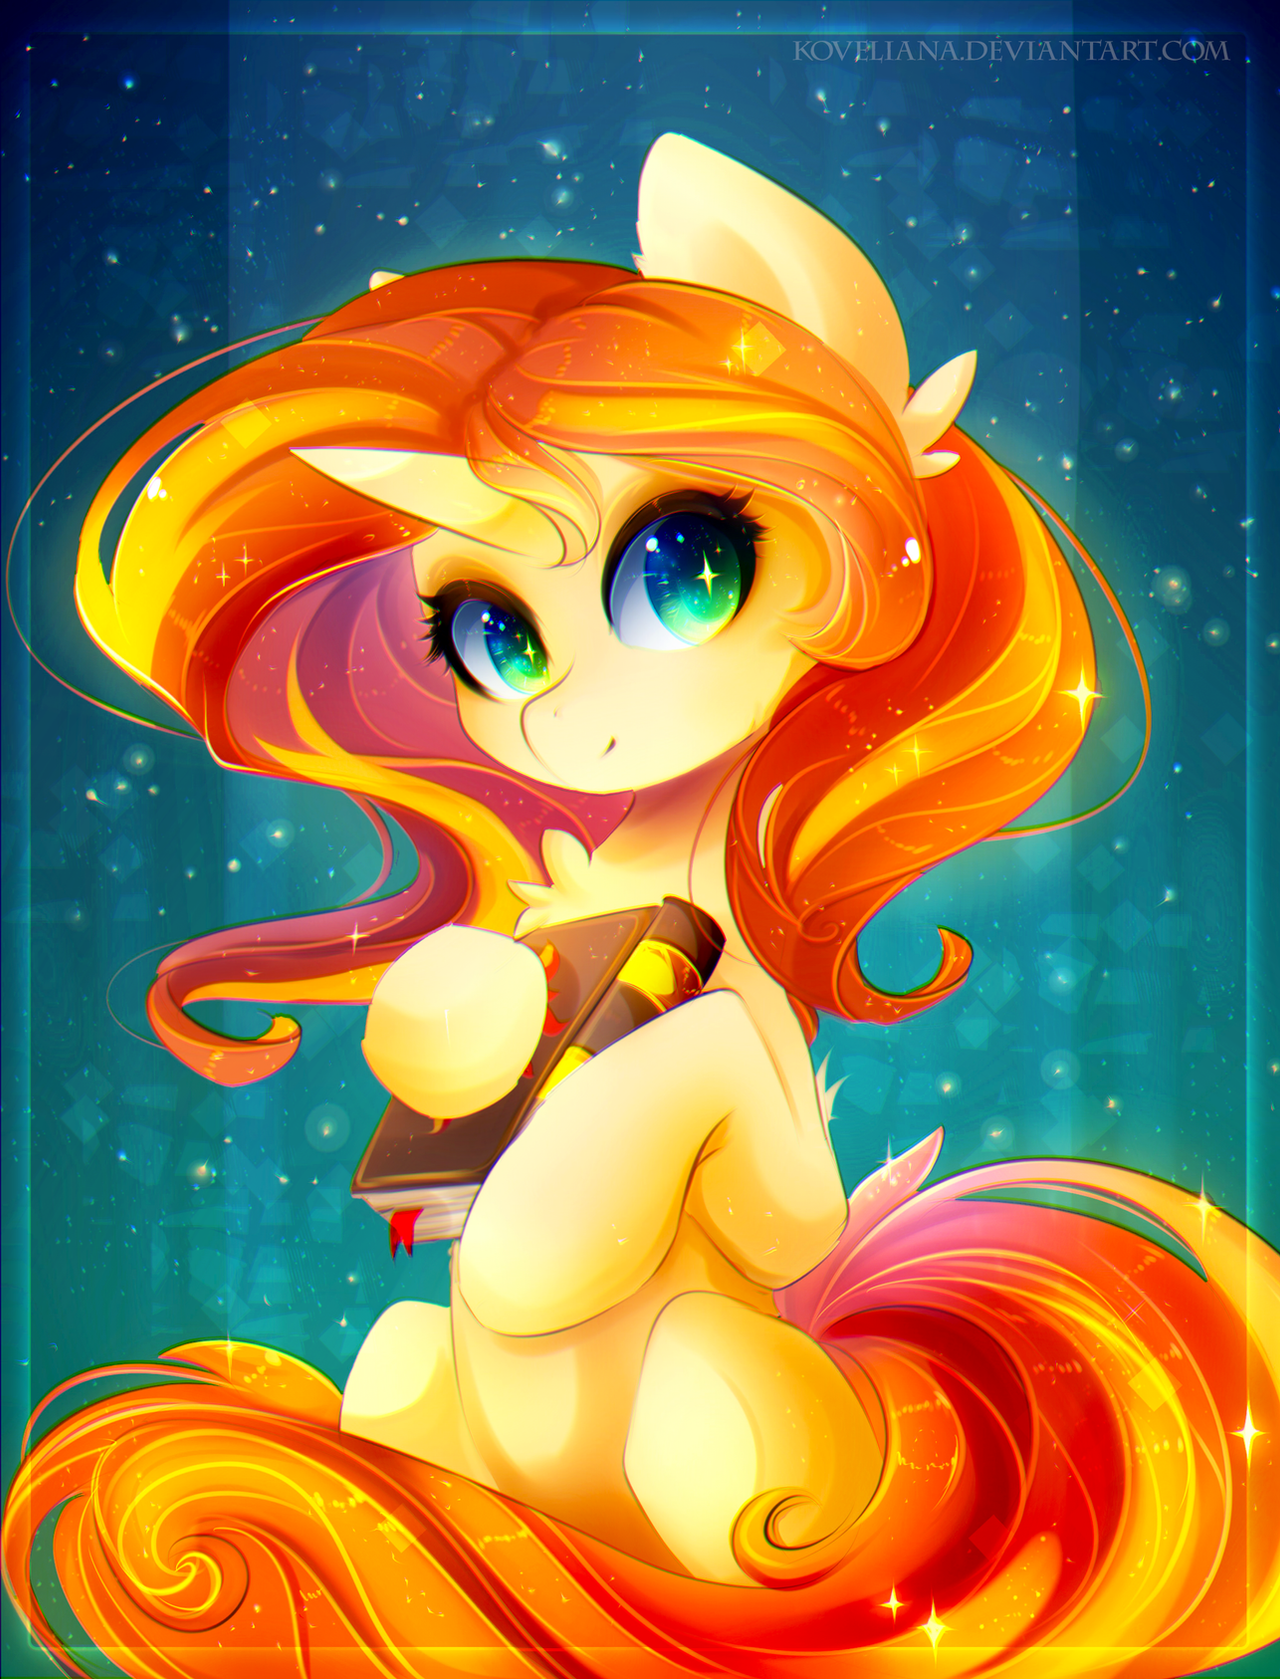 https://img00.deviantart.net/3af5/i/2016/186/6/b/sunset_shimmer_by_koveliana-da8uect.png